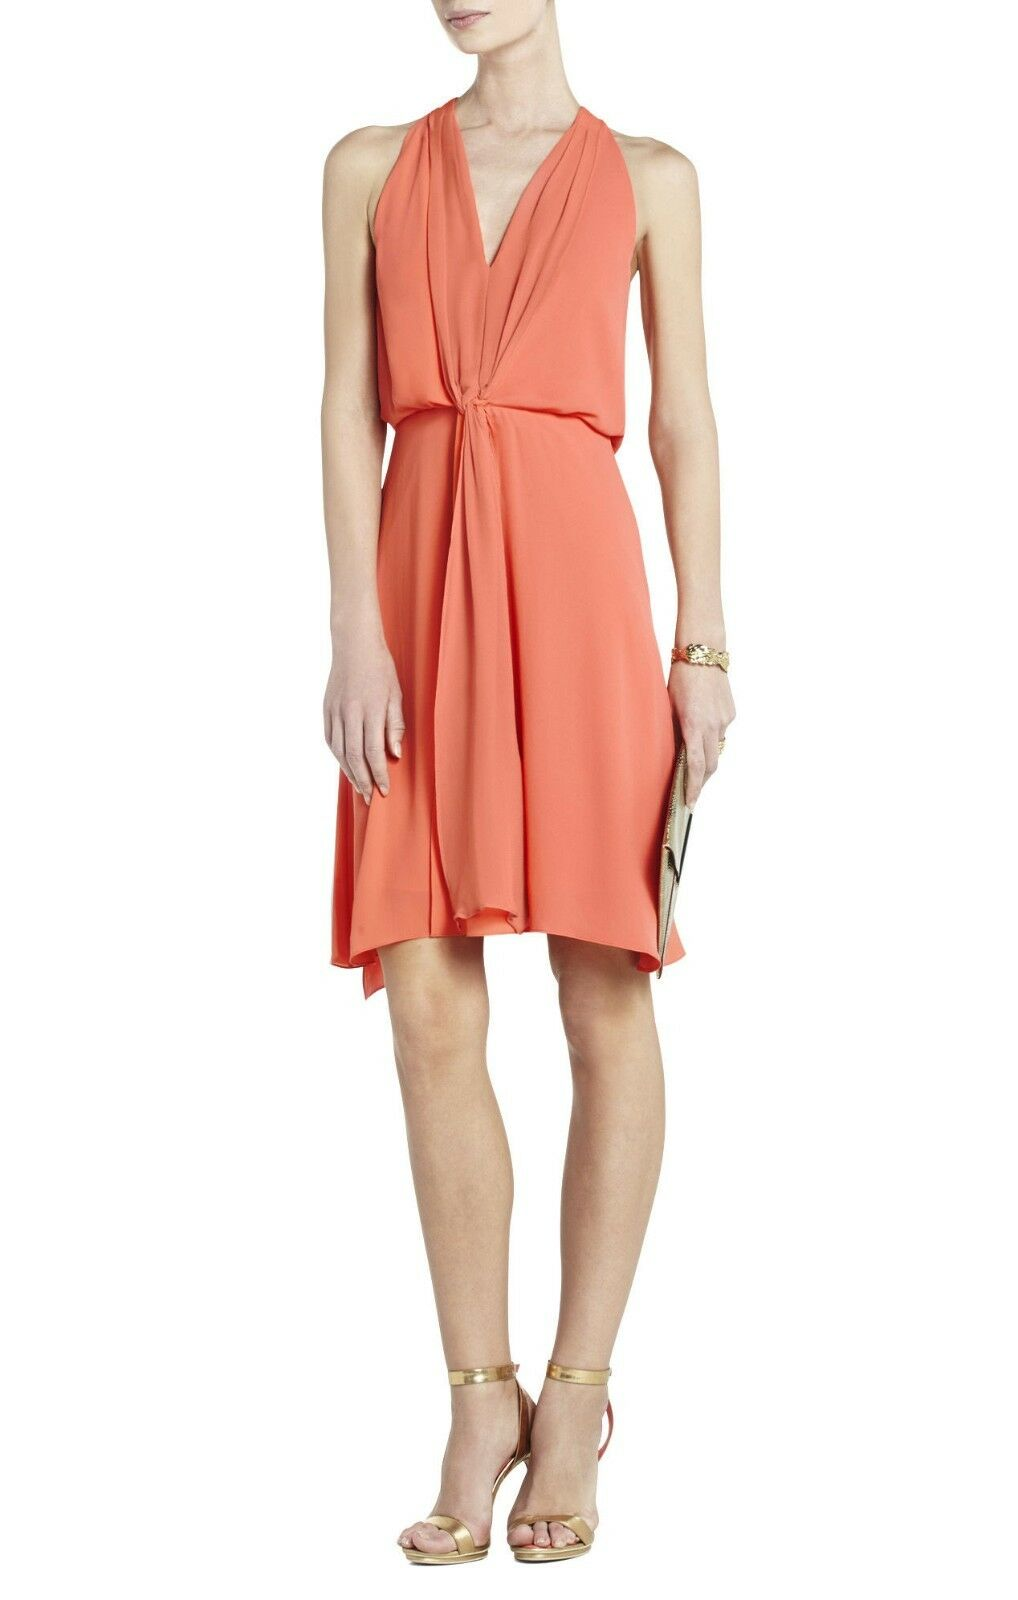 NEW BCBG MAX AZRIA AMBROSIA MARISA KNEE-LENGTH HALTER WQR6V916 M137 DRESS SIZE S